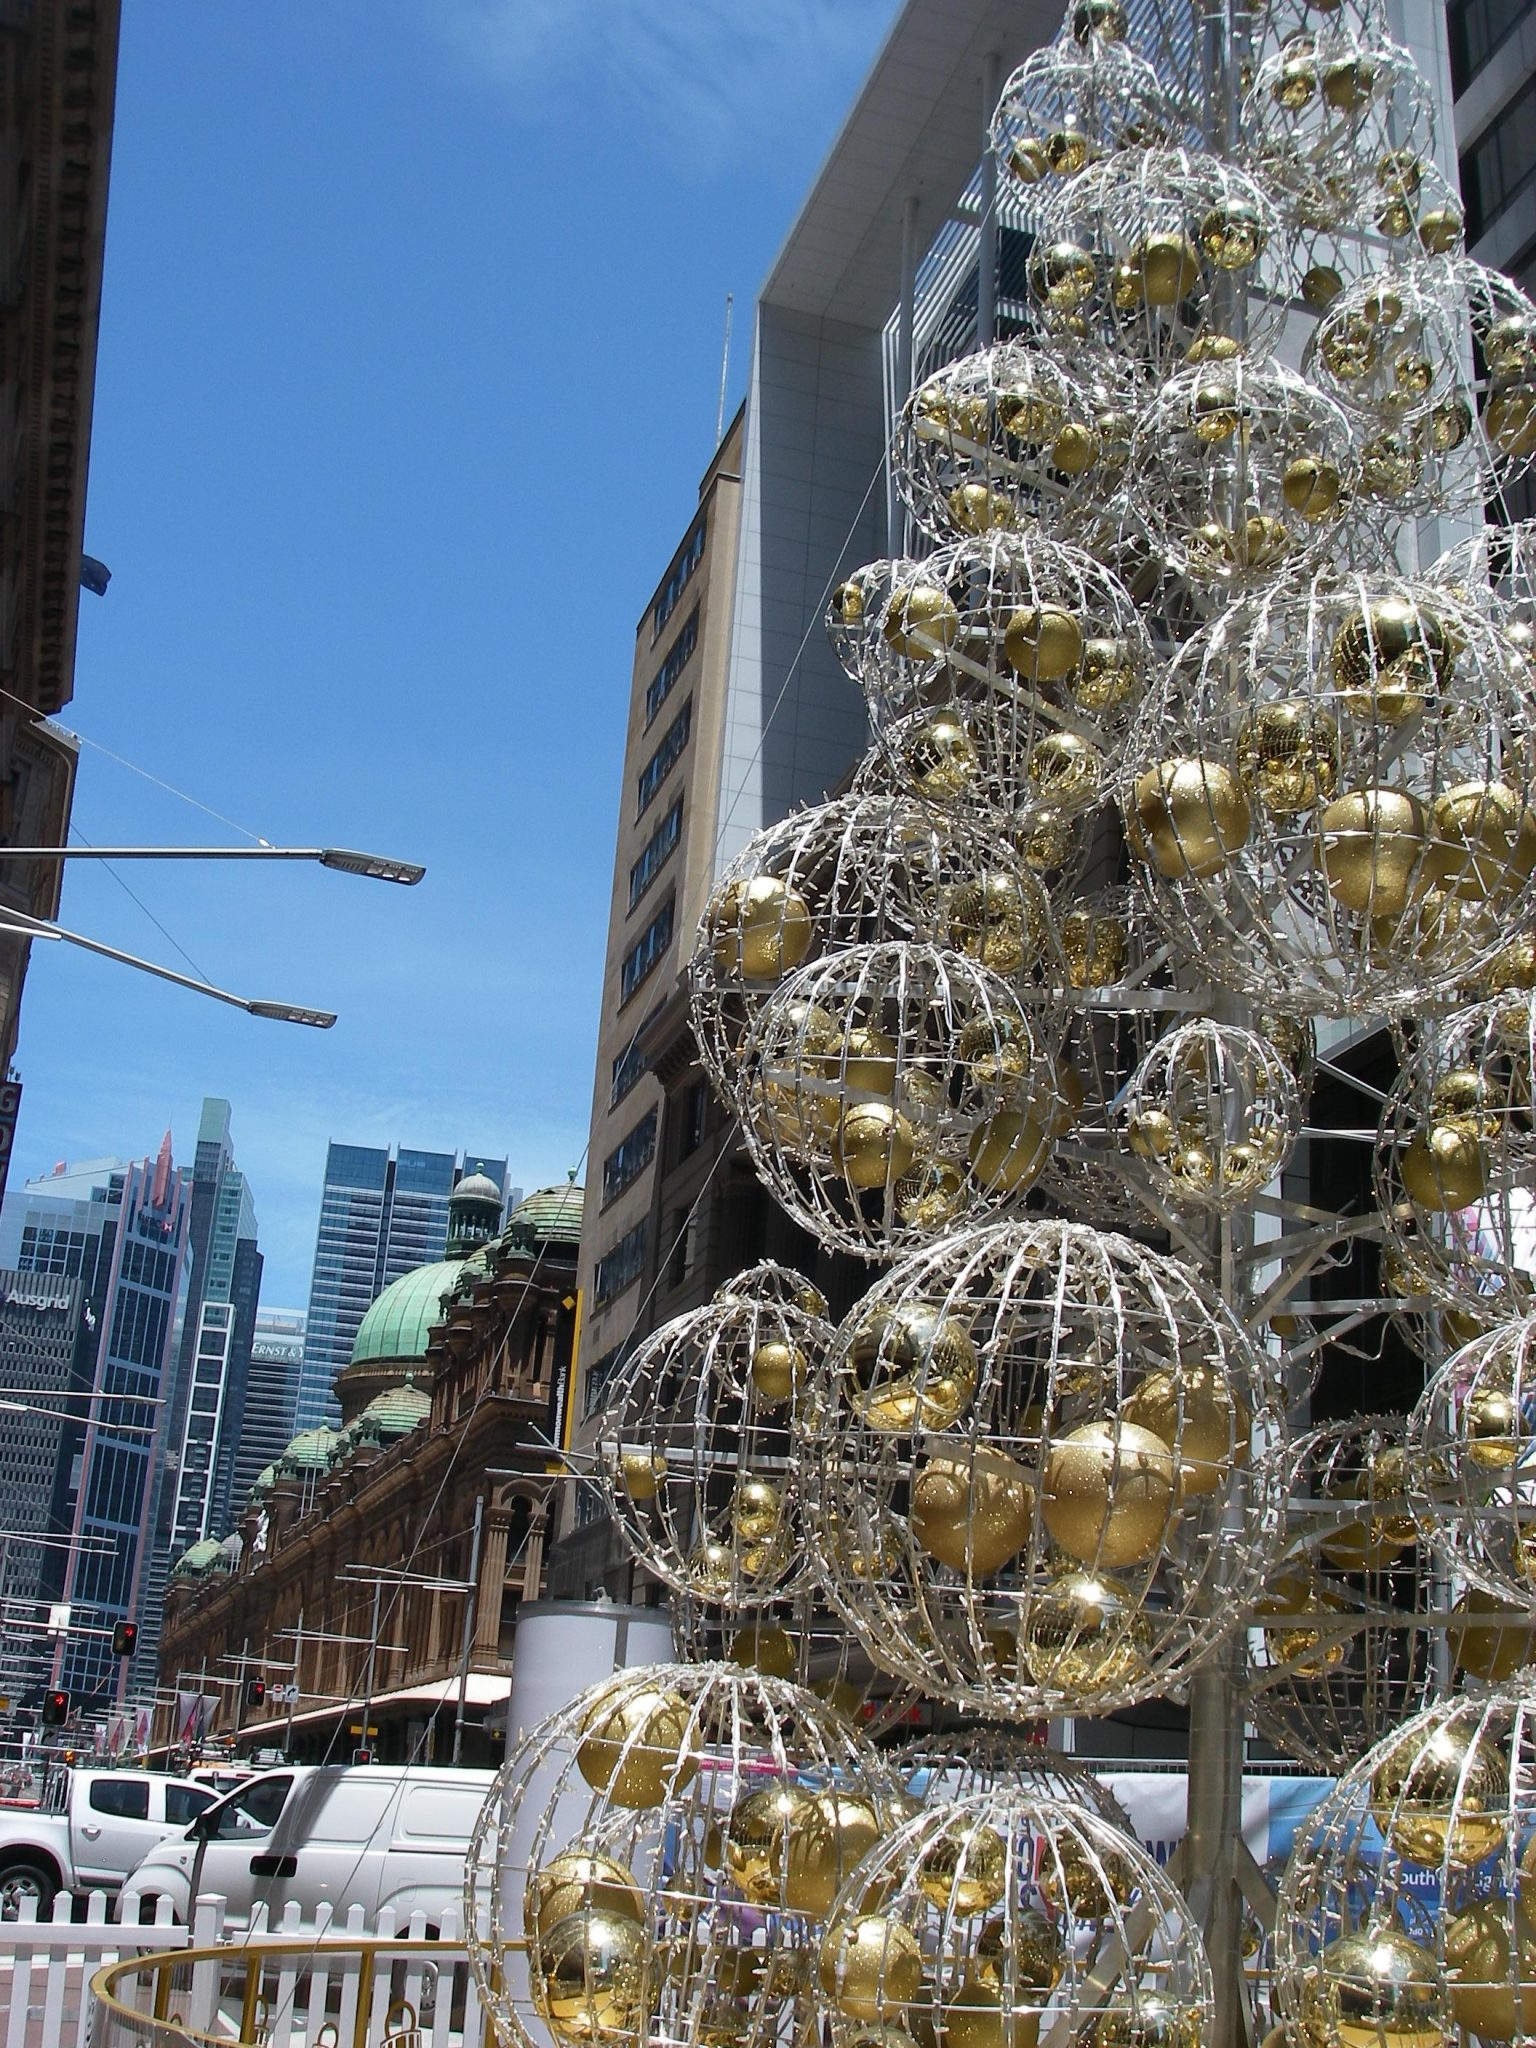 43. Another giant Christmas tree the City of Sydney displayed near the Queen Victoria building in the central business district of Sydney